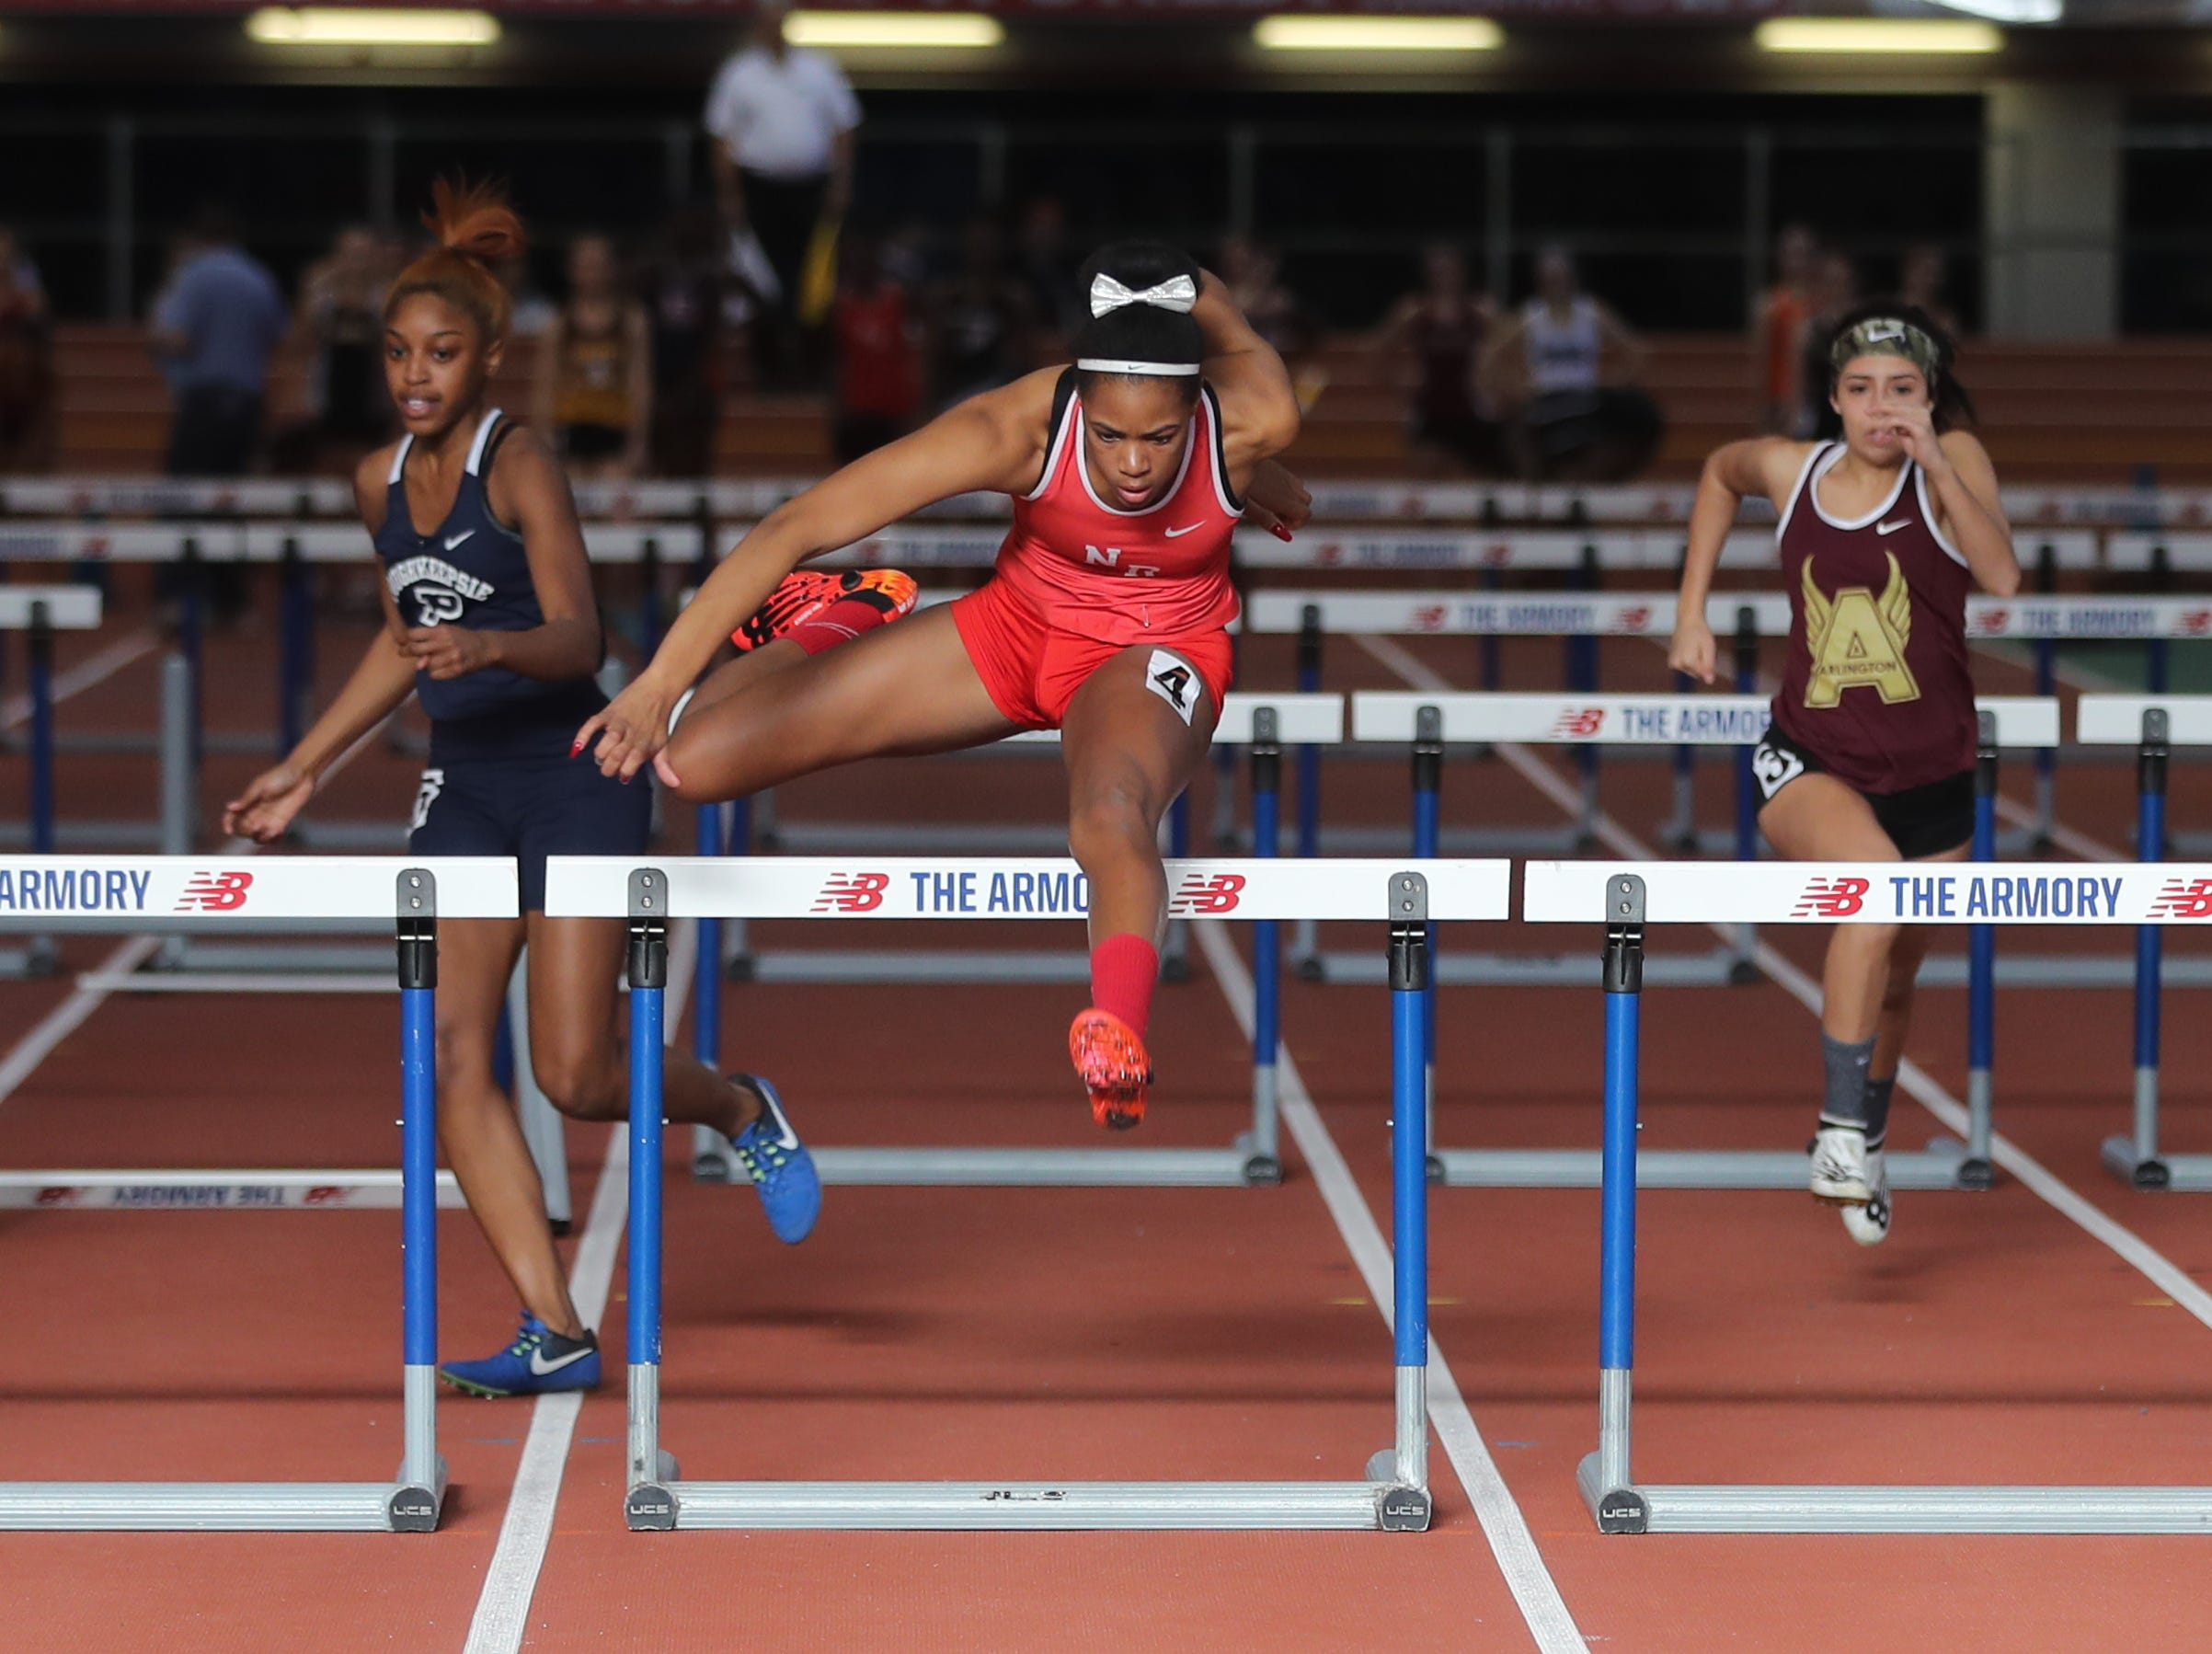 Torre Inzar of North Rockland won her heat in the 55 meter hurdles during the Section 1 New York State Track and Field State Qualifier at the New Balance Armory in Manhattan Feb. 17, 2019.